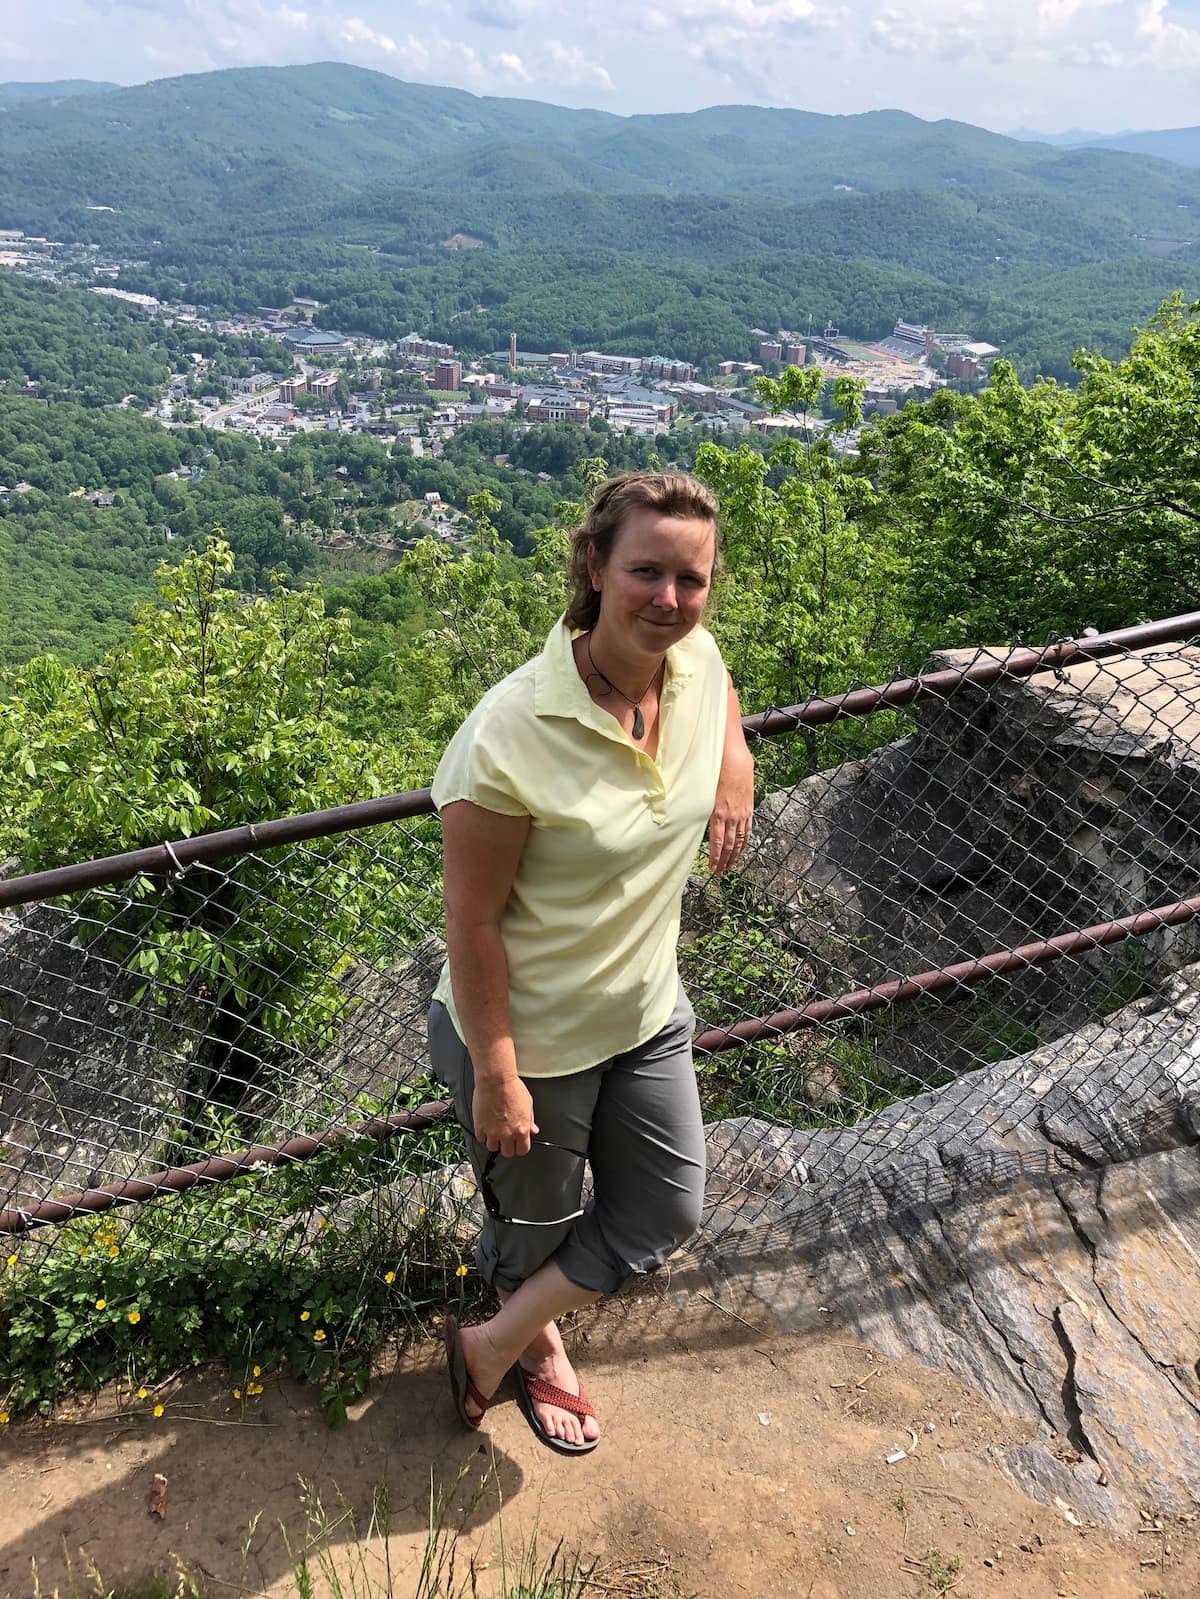 erin s at a scenic overlook